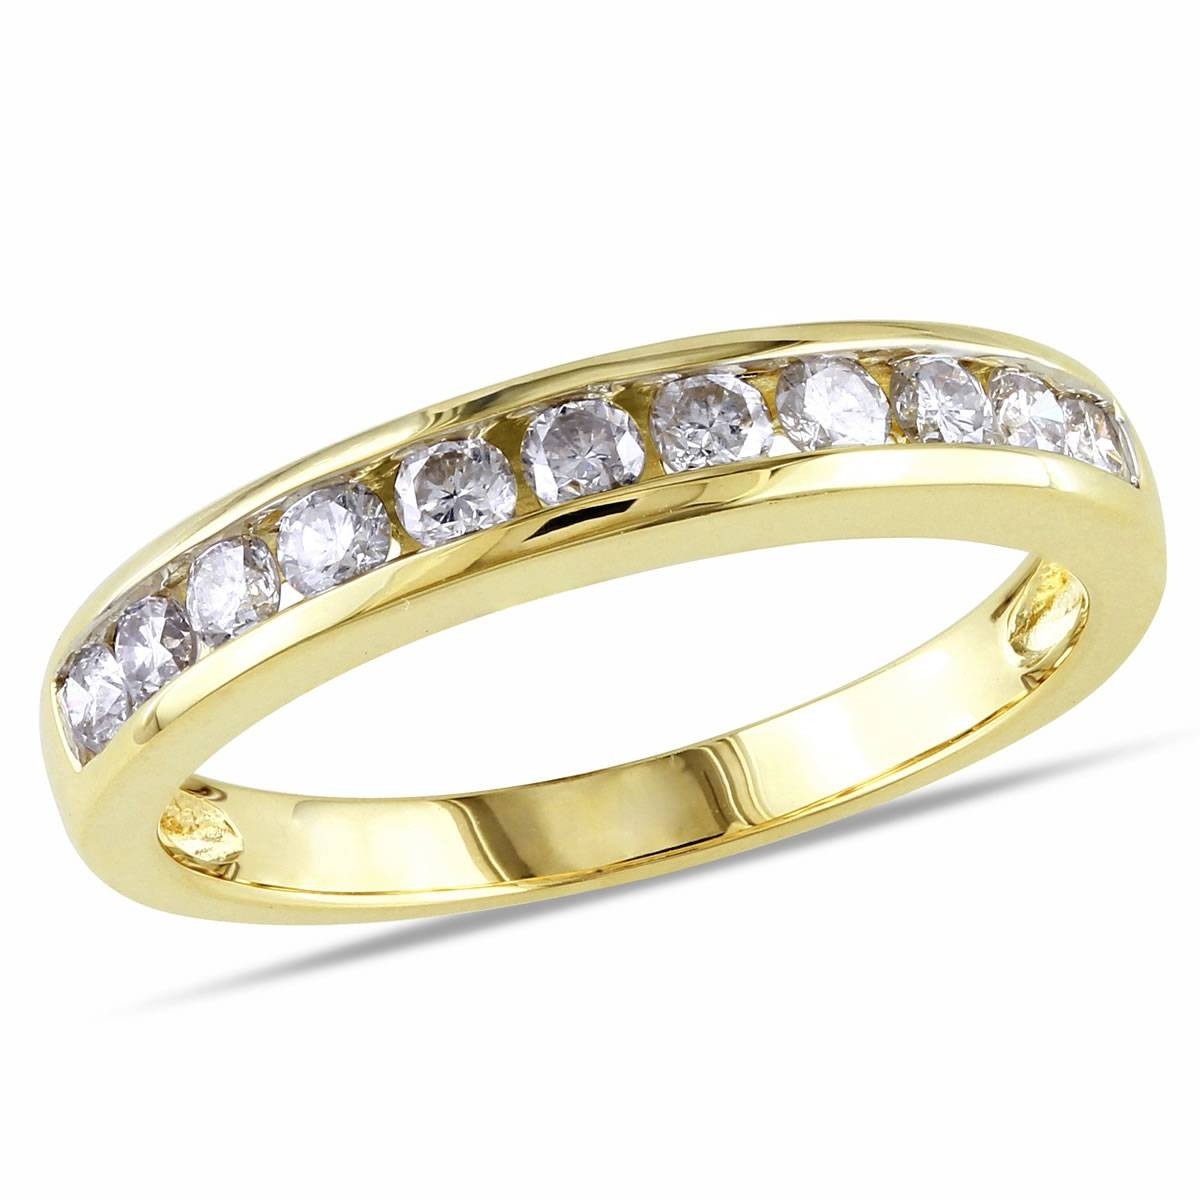 10K Yellow Gold 1/2 Ct Diamond Tw Eternity Anniversary Ring, Gh I2 Throughout 2017 Yellow Diamond Anniversary Rings (View 8 of 25)